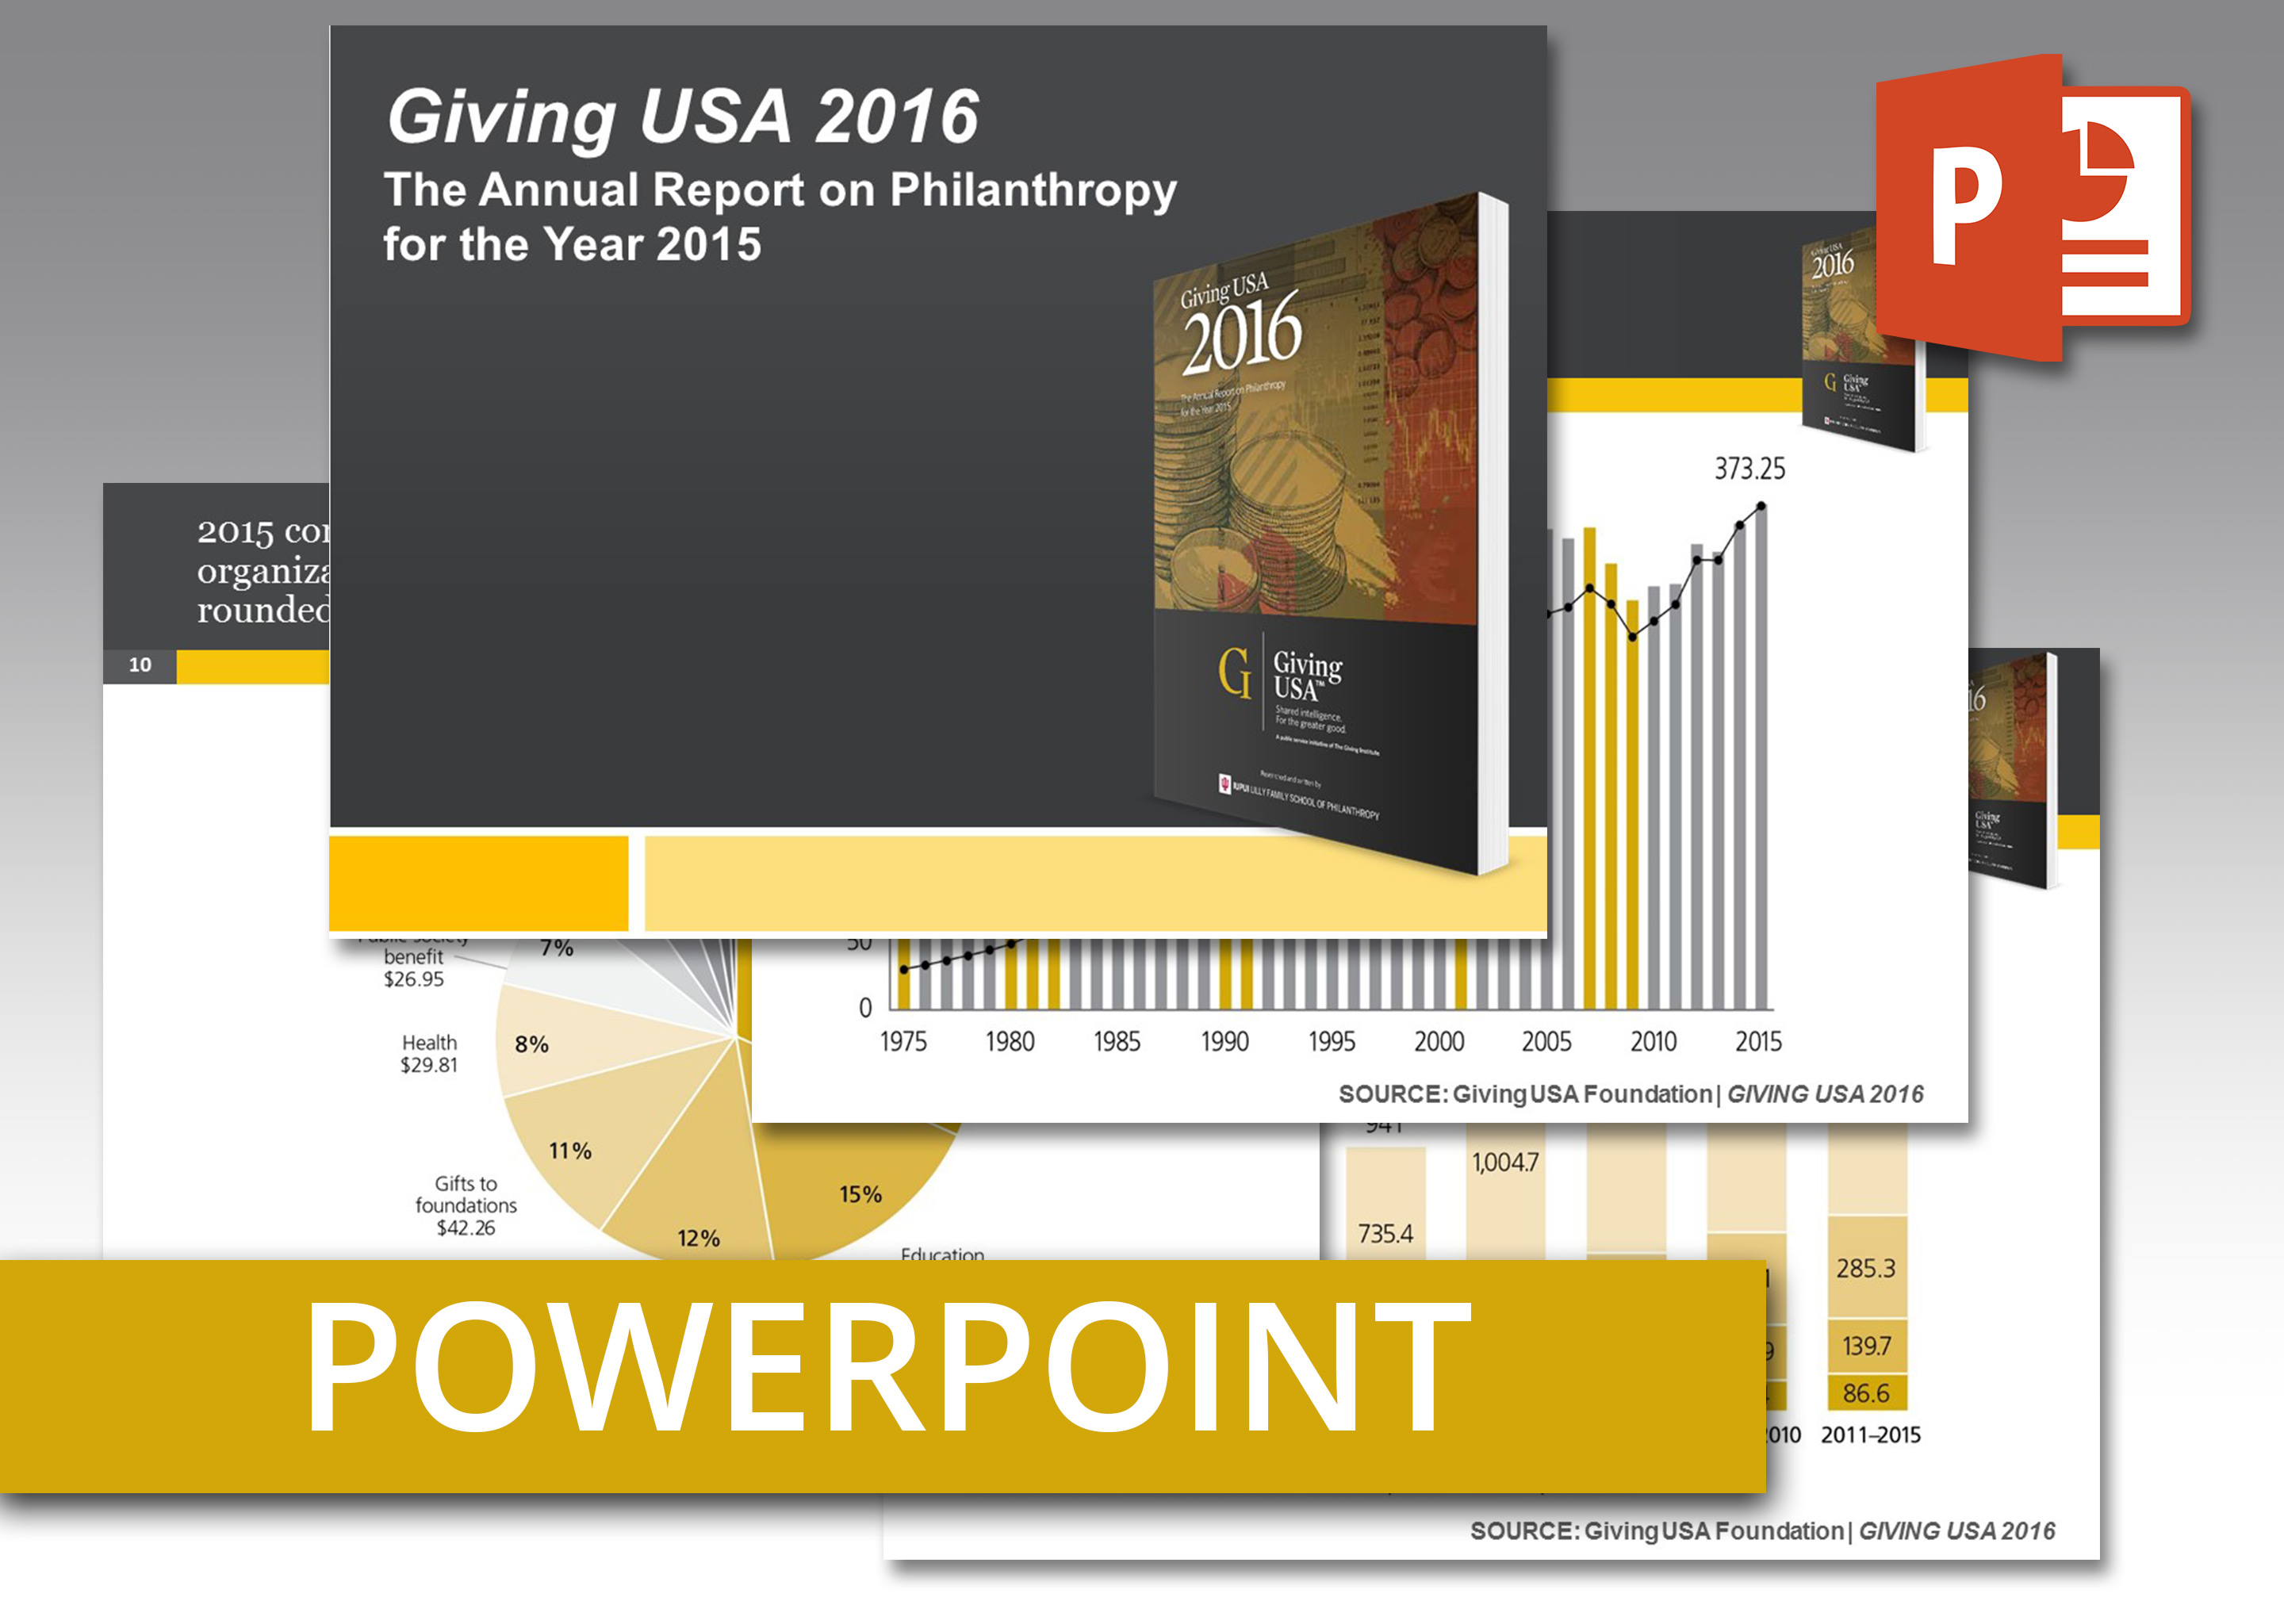 Usdgus  Personable Giving Usa  Powerpoint An Easytouse Presentation Of Report  With Fair Giving Usa  Powerpoint An Easytouse Presentation Of Report Findings Including Talking Points With Lovely Countdown Timer On Powerpoint Also Download Powerpoint Backgrounds In Addition Powerpoint Certificate Template Free And Rd Grade Math Powerpoints As Well As Narration Powerpoint Additionally What Is Powerpoint  From Givingusaorg With Usdgus  Fair Giving Usa  Powerpoint An Easytouse Presentation Of Report  With Lovely Giving Usa  Powerpoint An Easytouse Presentation Of Report Findings Including Talking Points And Personable Countdown Timer On Powerpoint Also Download Powerpoint Backgrounds In Addition Powerpoint Certificate Template Free From Givingusaorg